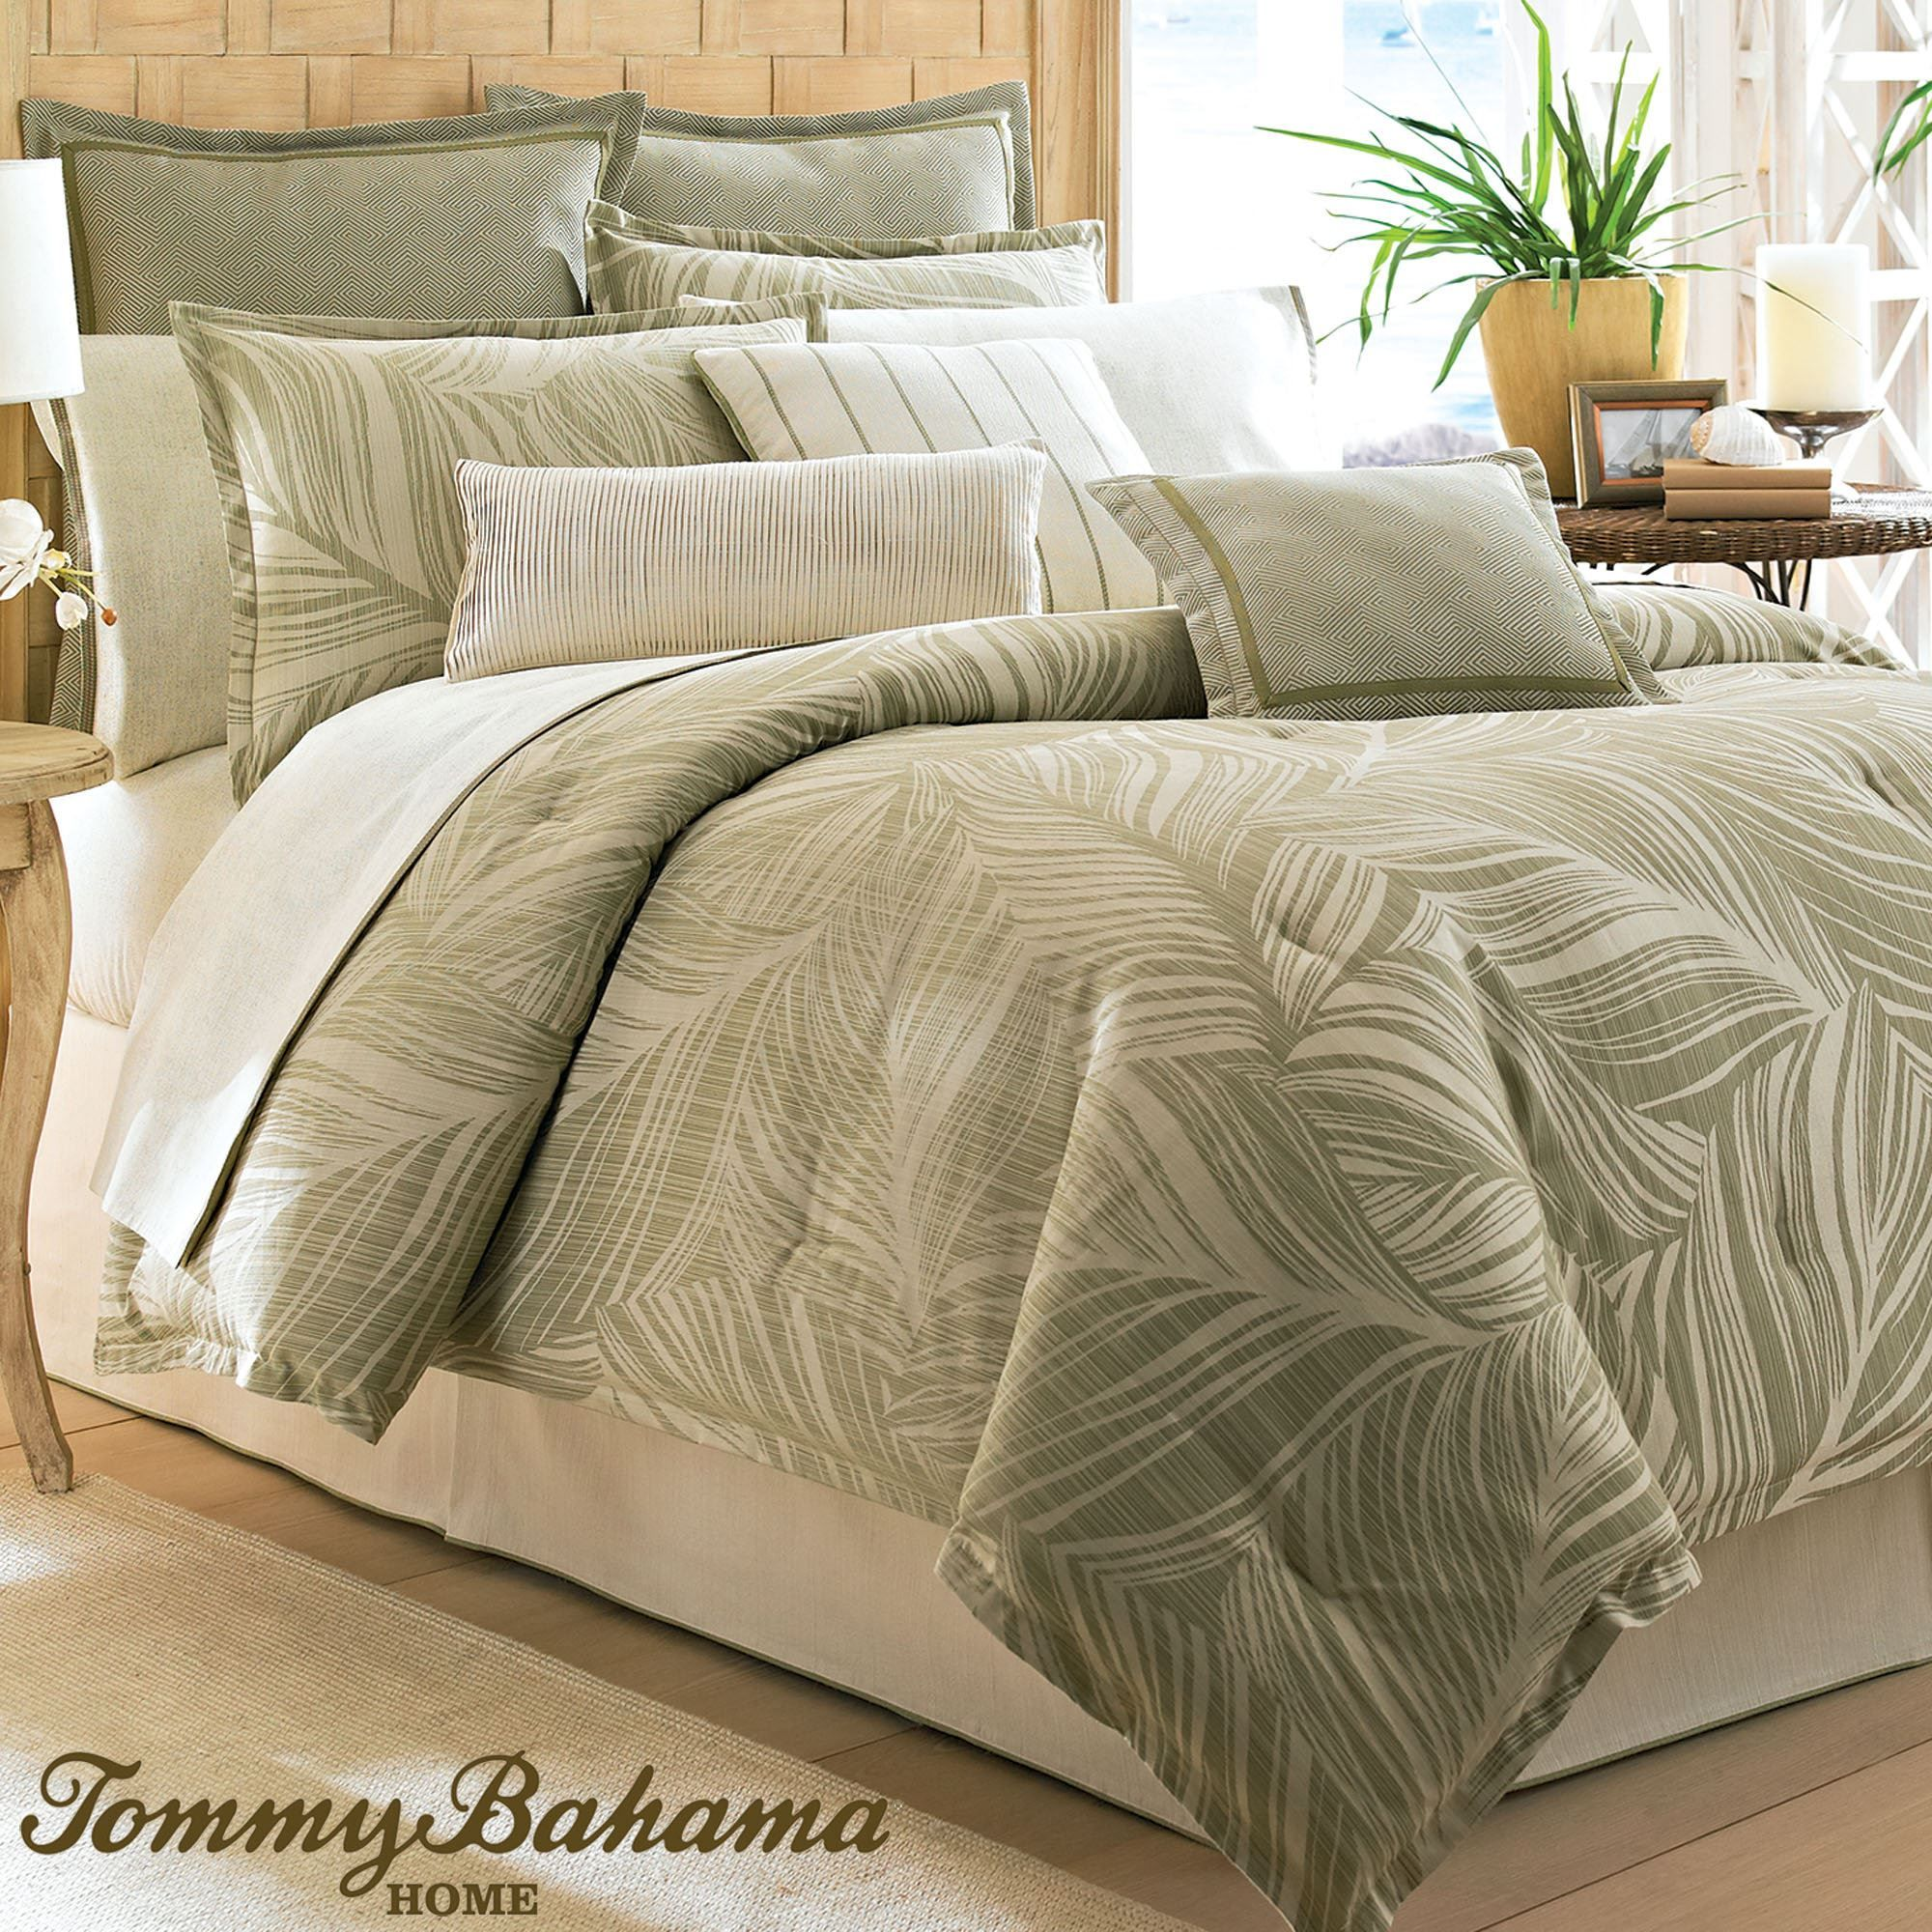 Perfect Montauk Drifter Tropical Comforter Bedding By Tommy Bahama · King Comforter  SetsComforters ...